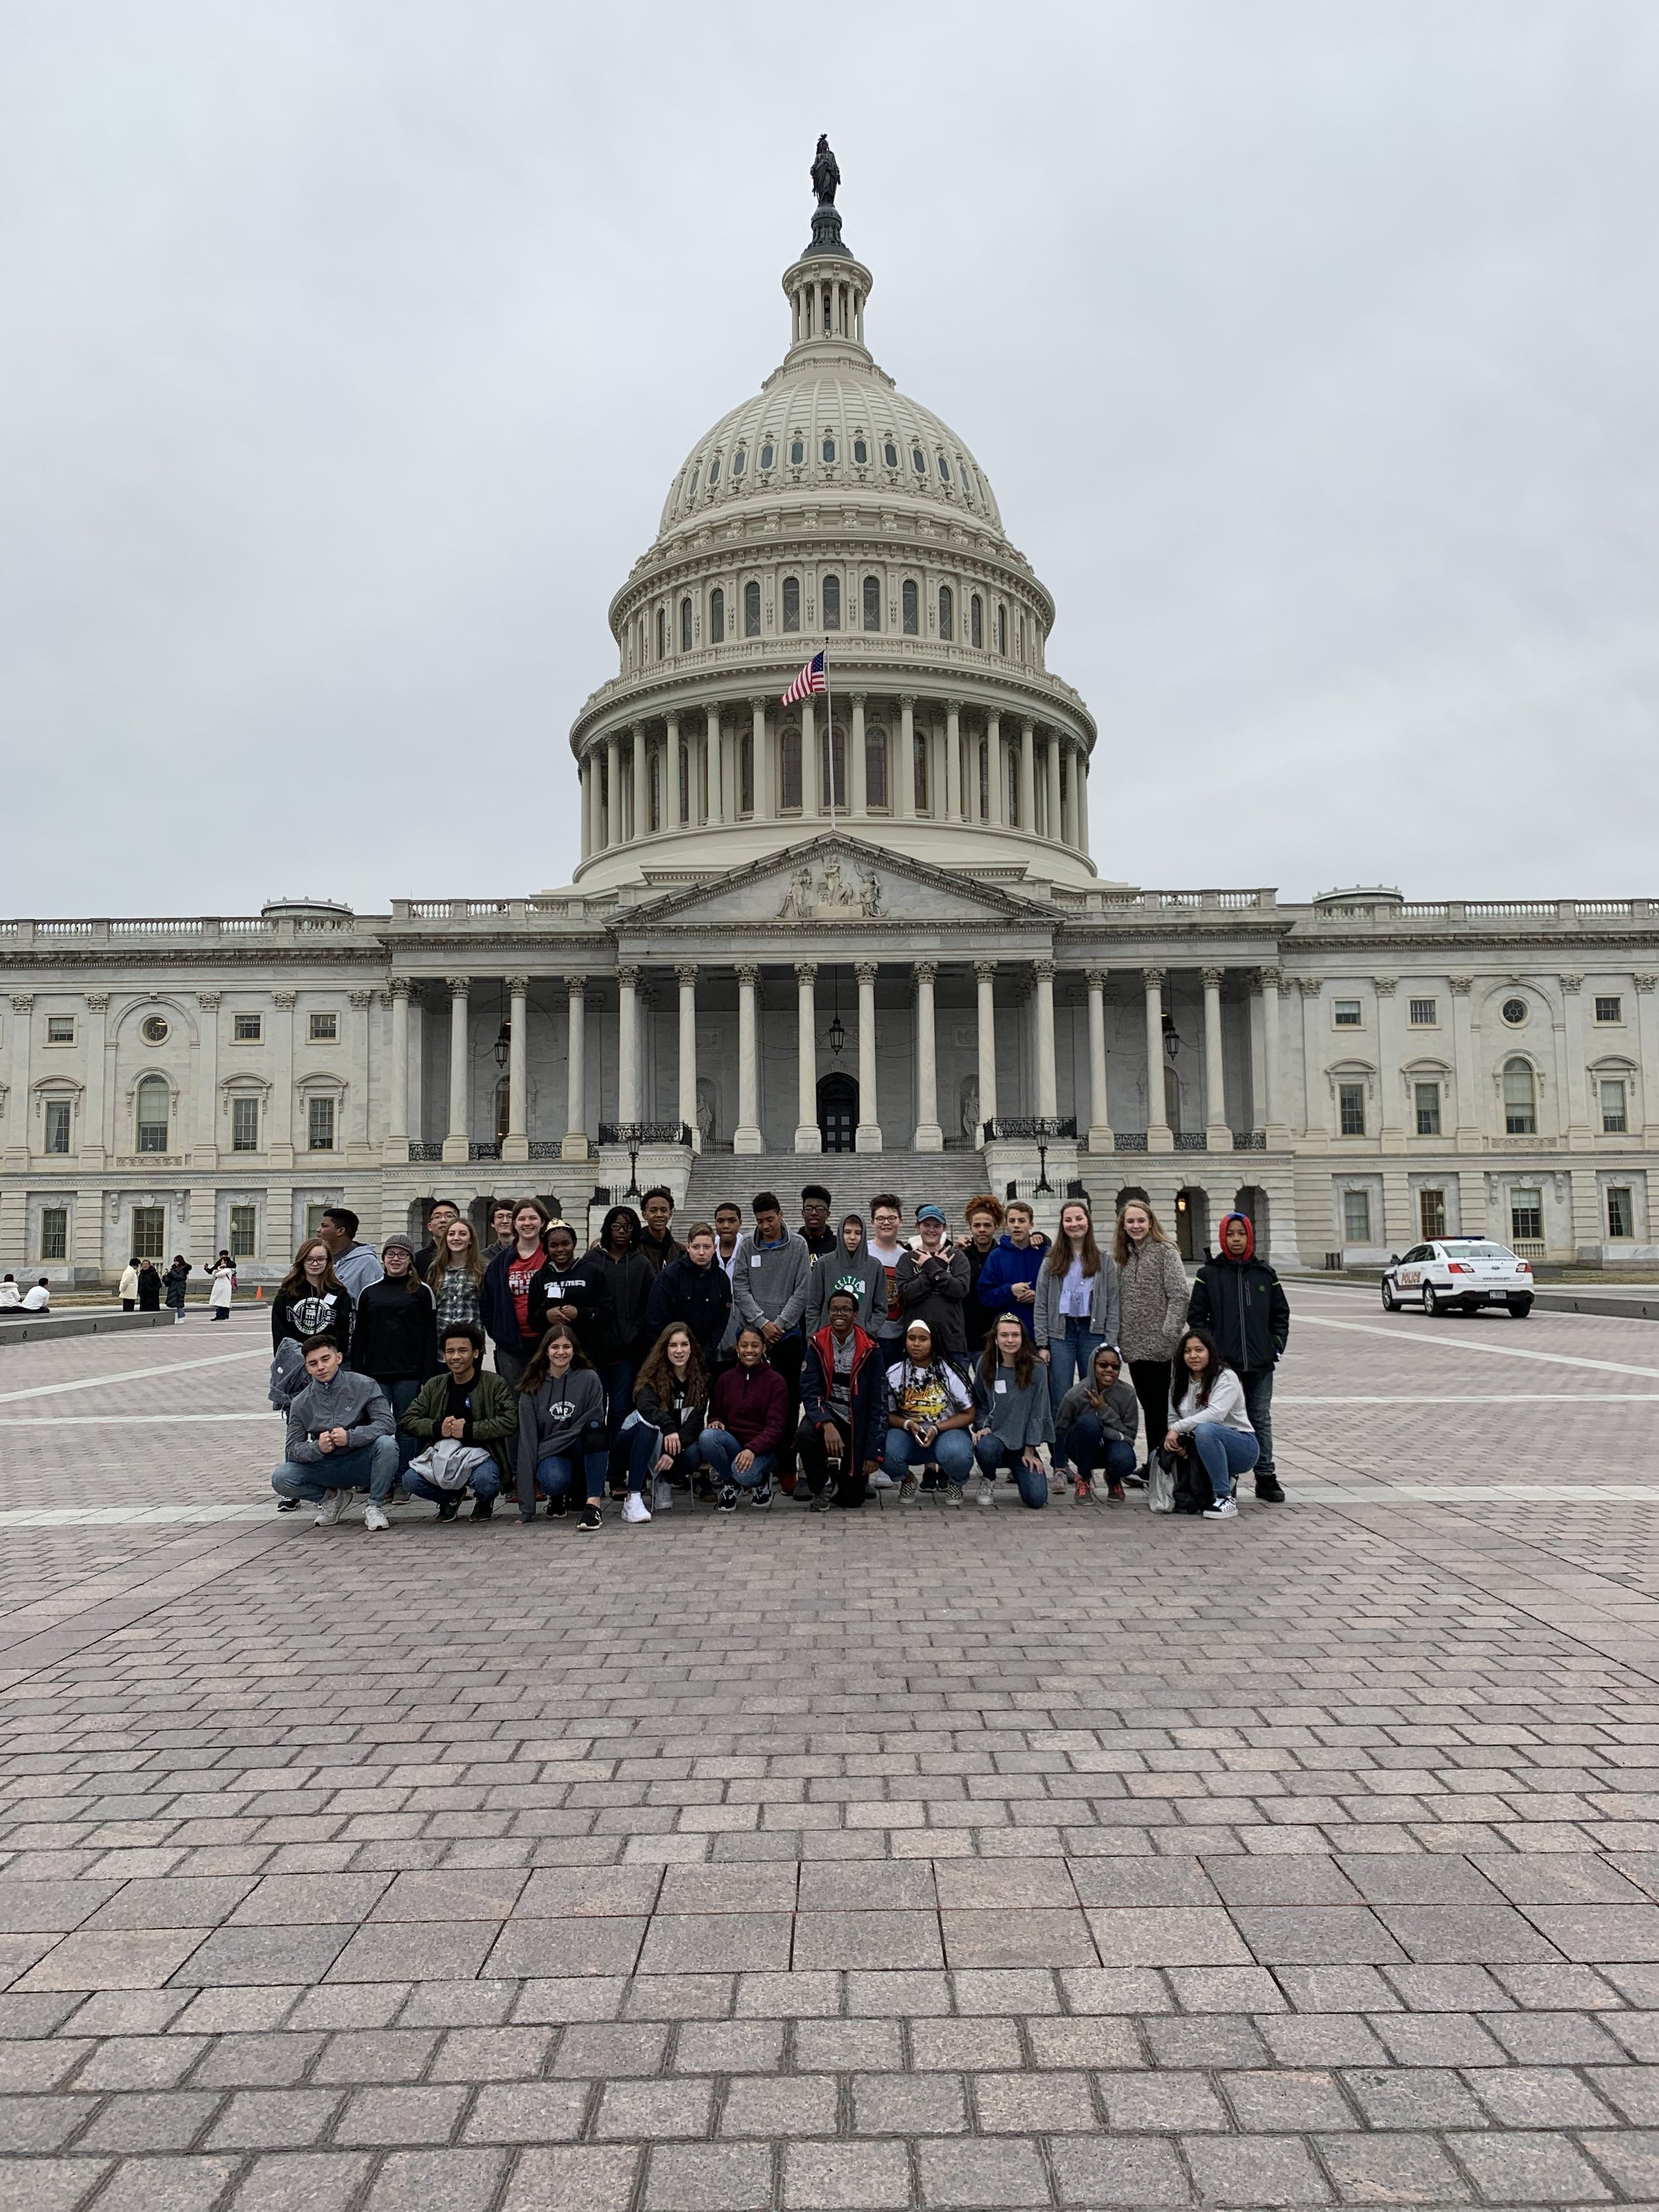 Washington, D.C. - Our eighth graders have the time of their lives visiting the nation's capitol. Each year is slightly different but always includes trips to the Capitol Building, Supreme Court, Nighttime Monument Walk, Supreme Court, and Museum of Natural History, Arlington National Cemetery with participation in the wreath laying ceremony, plus much more!